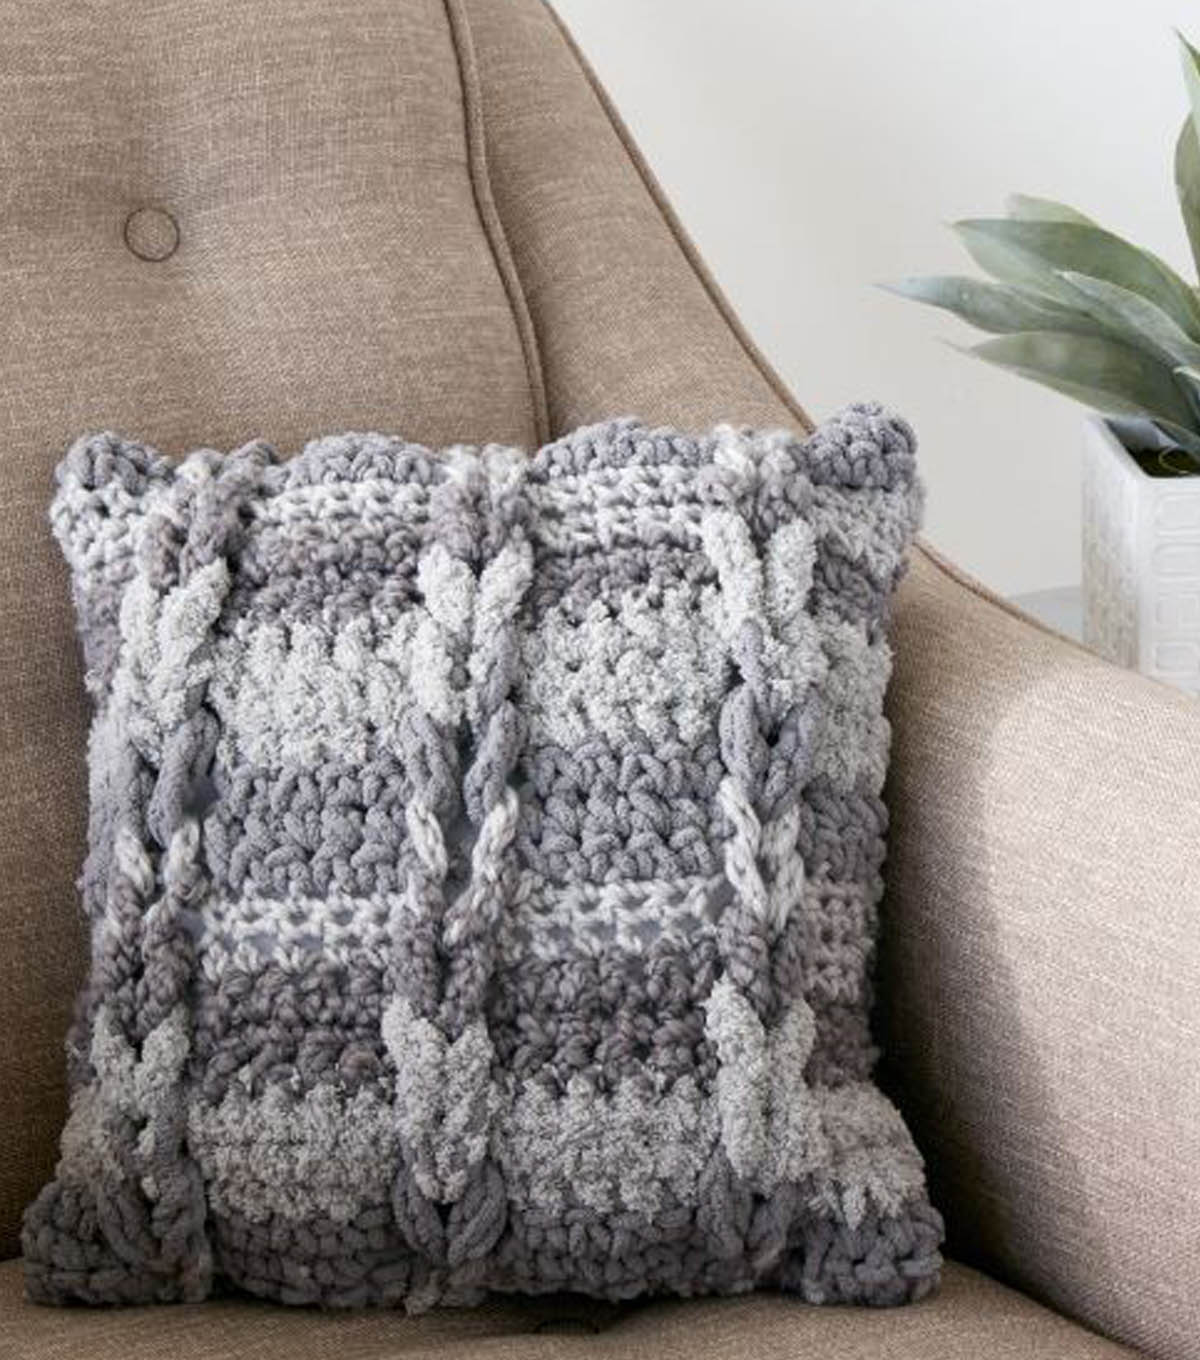 How to Crochet a Cable Pillow | JOANN